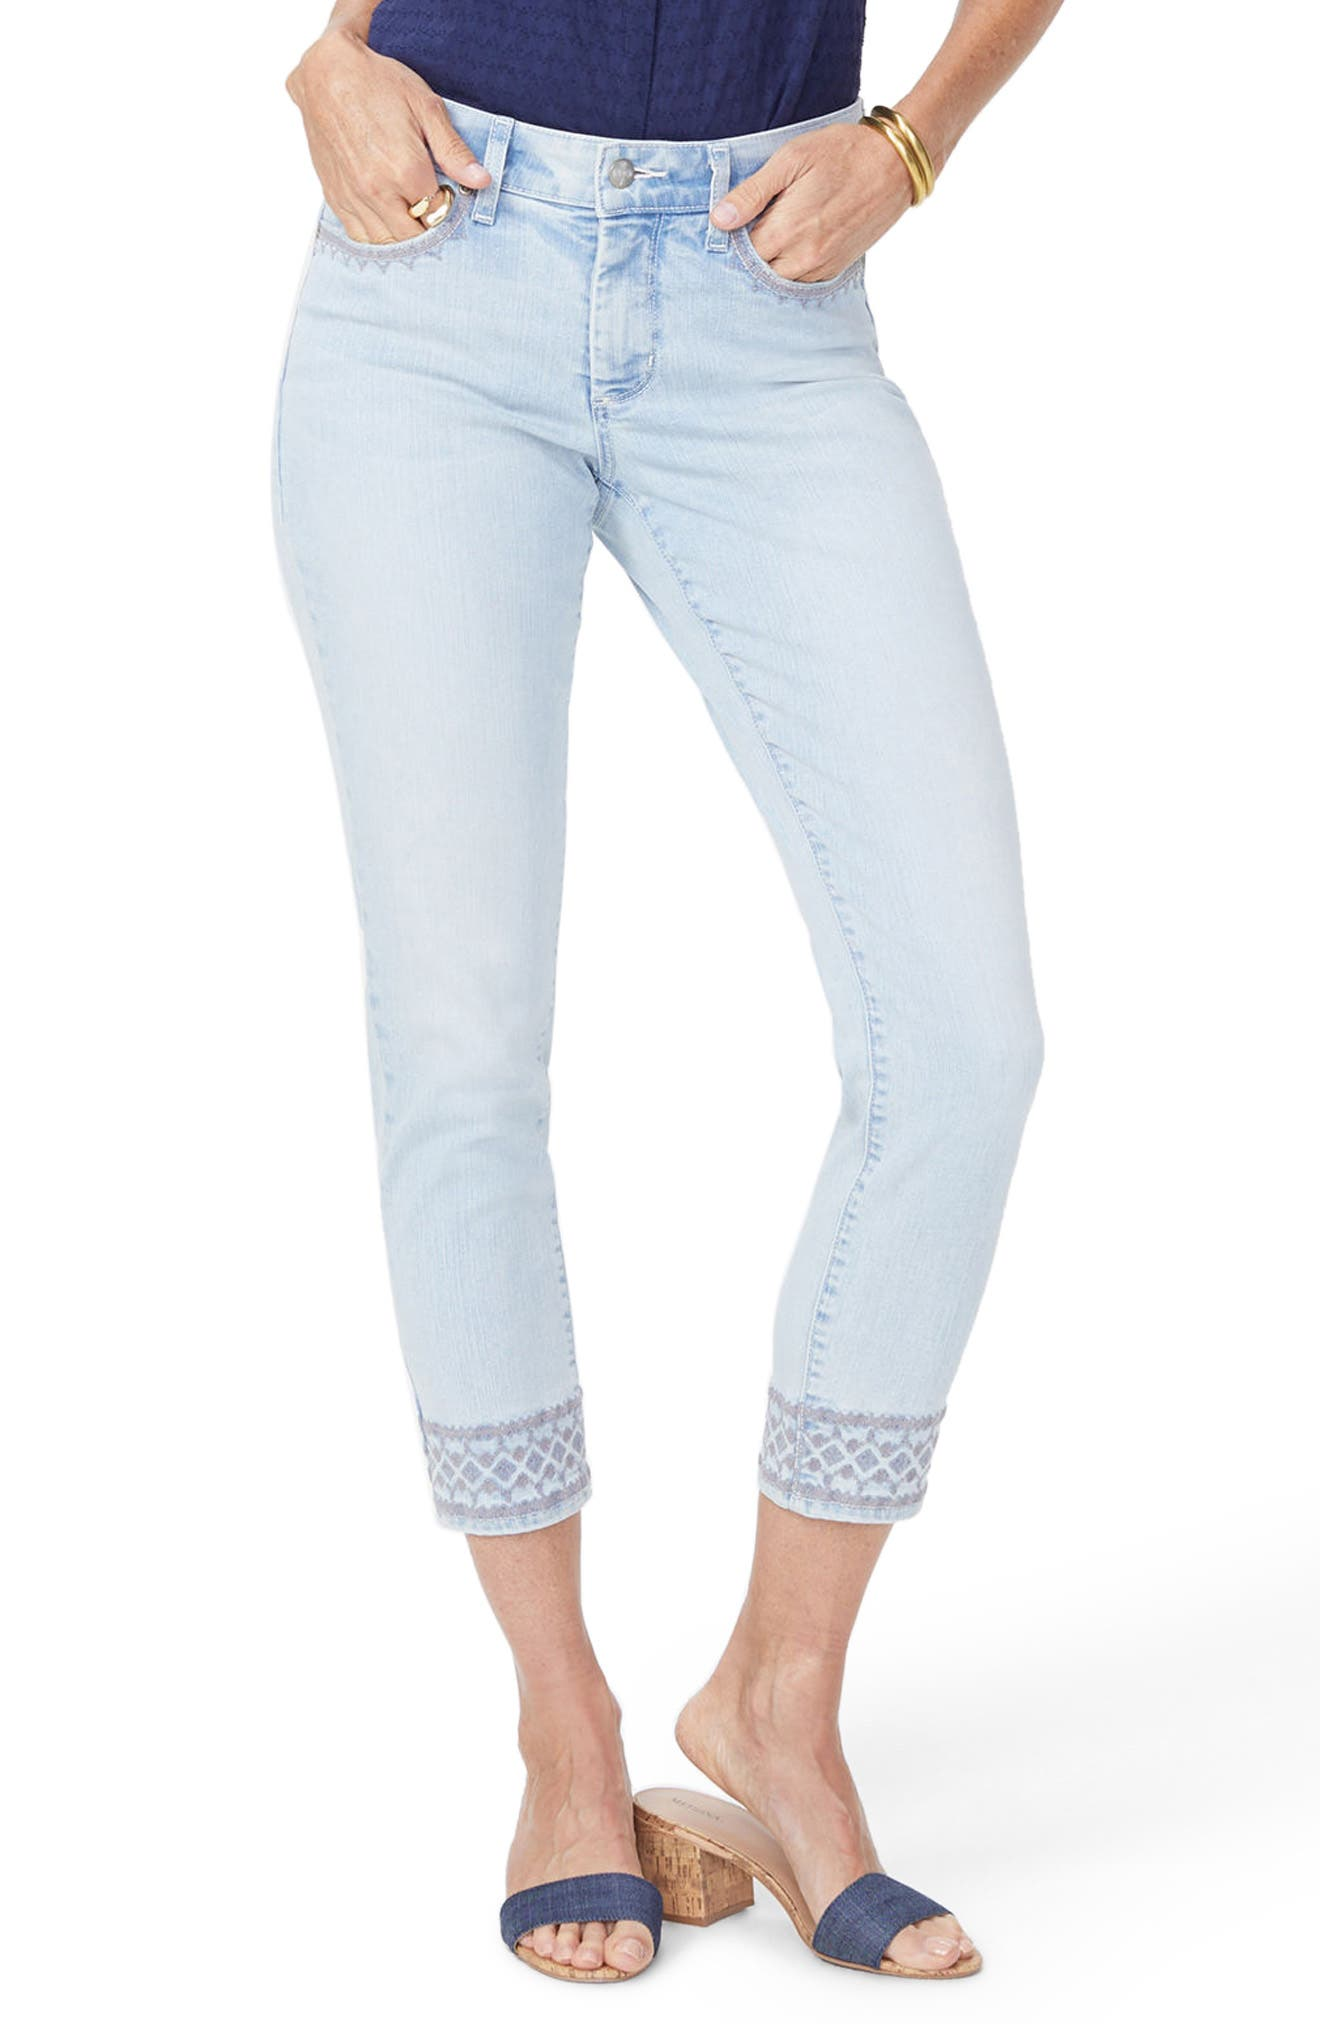 Ami Embroidered Border Ankle Skinny Jeans,                             Main thumbnail 1, color,                             Palm Desert